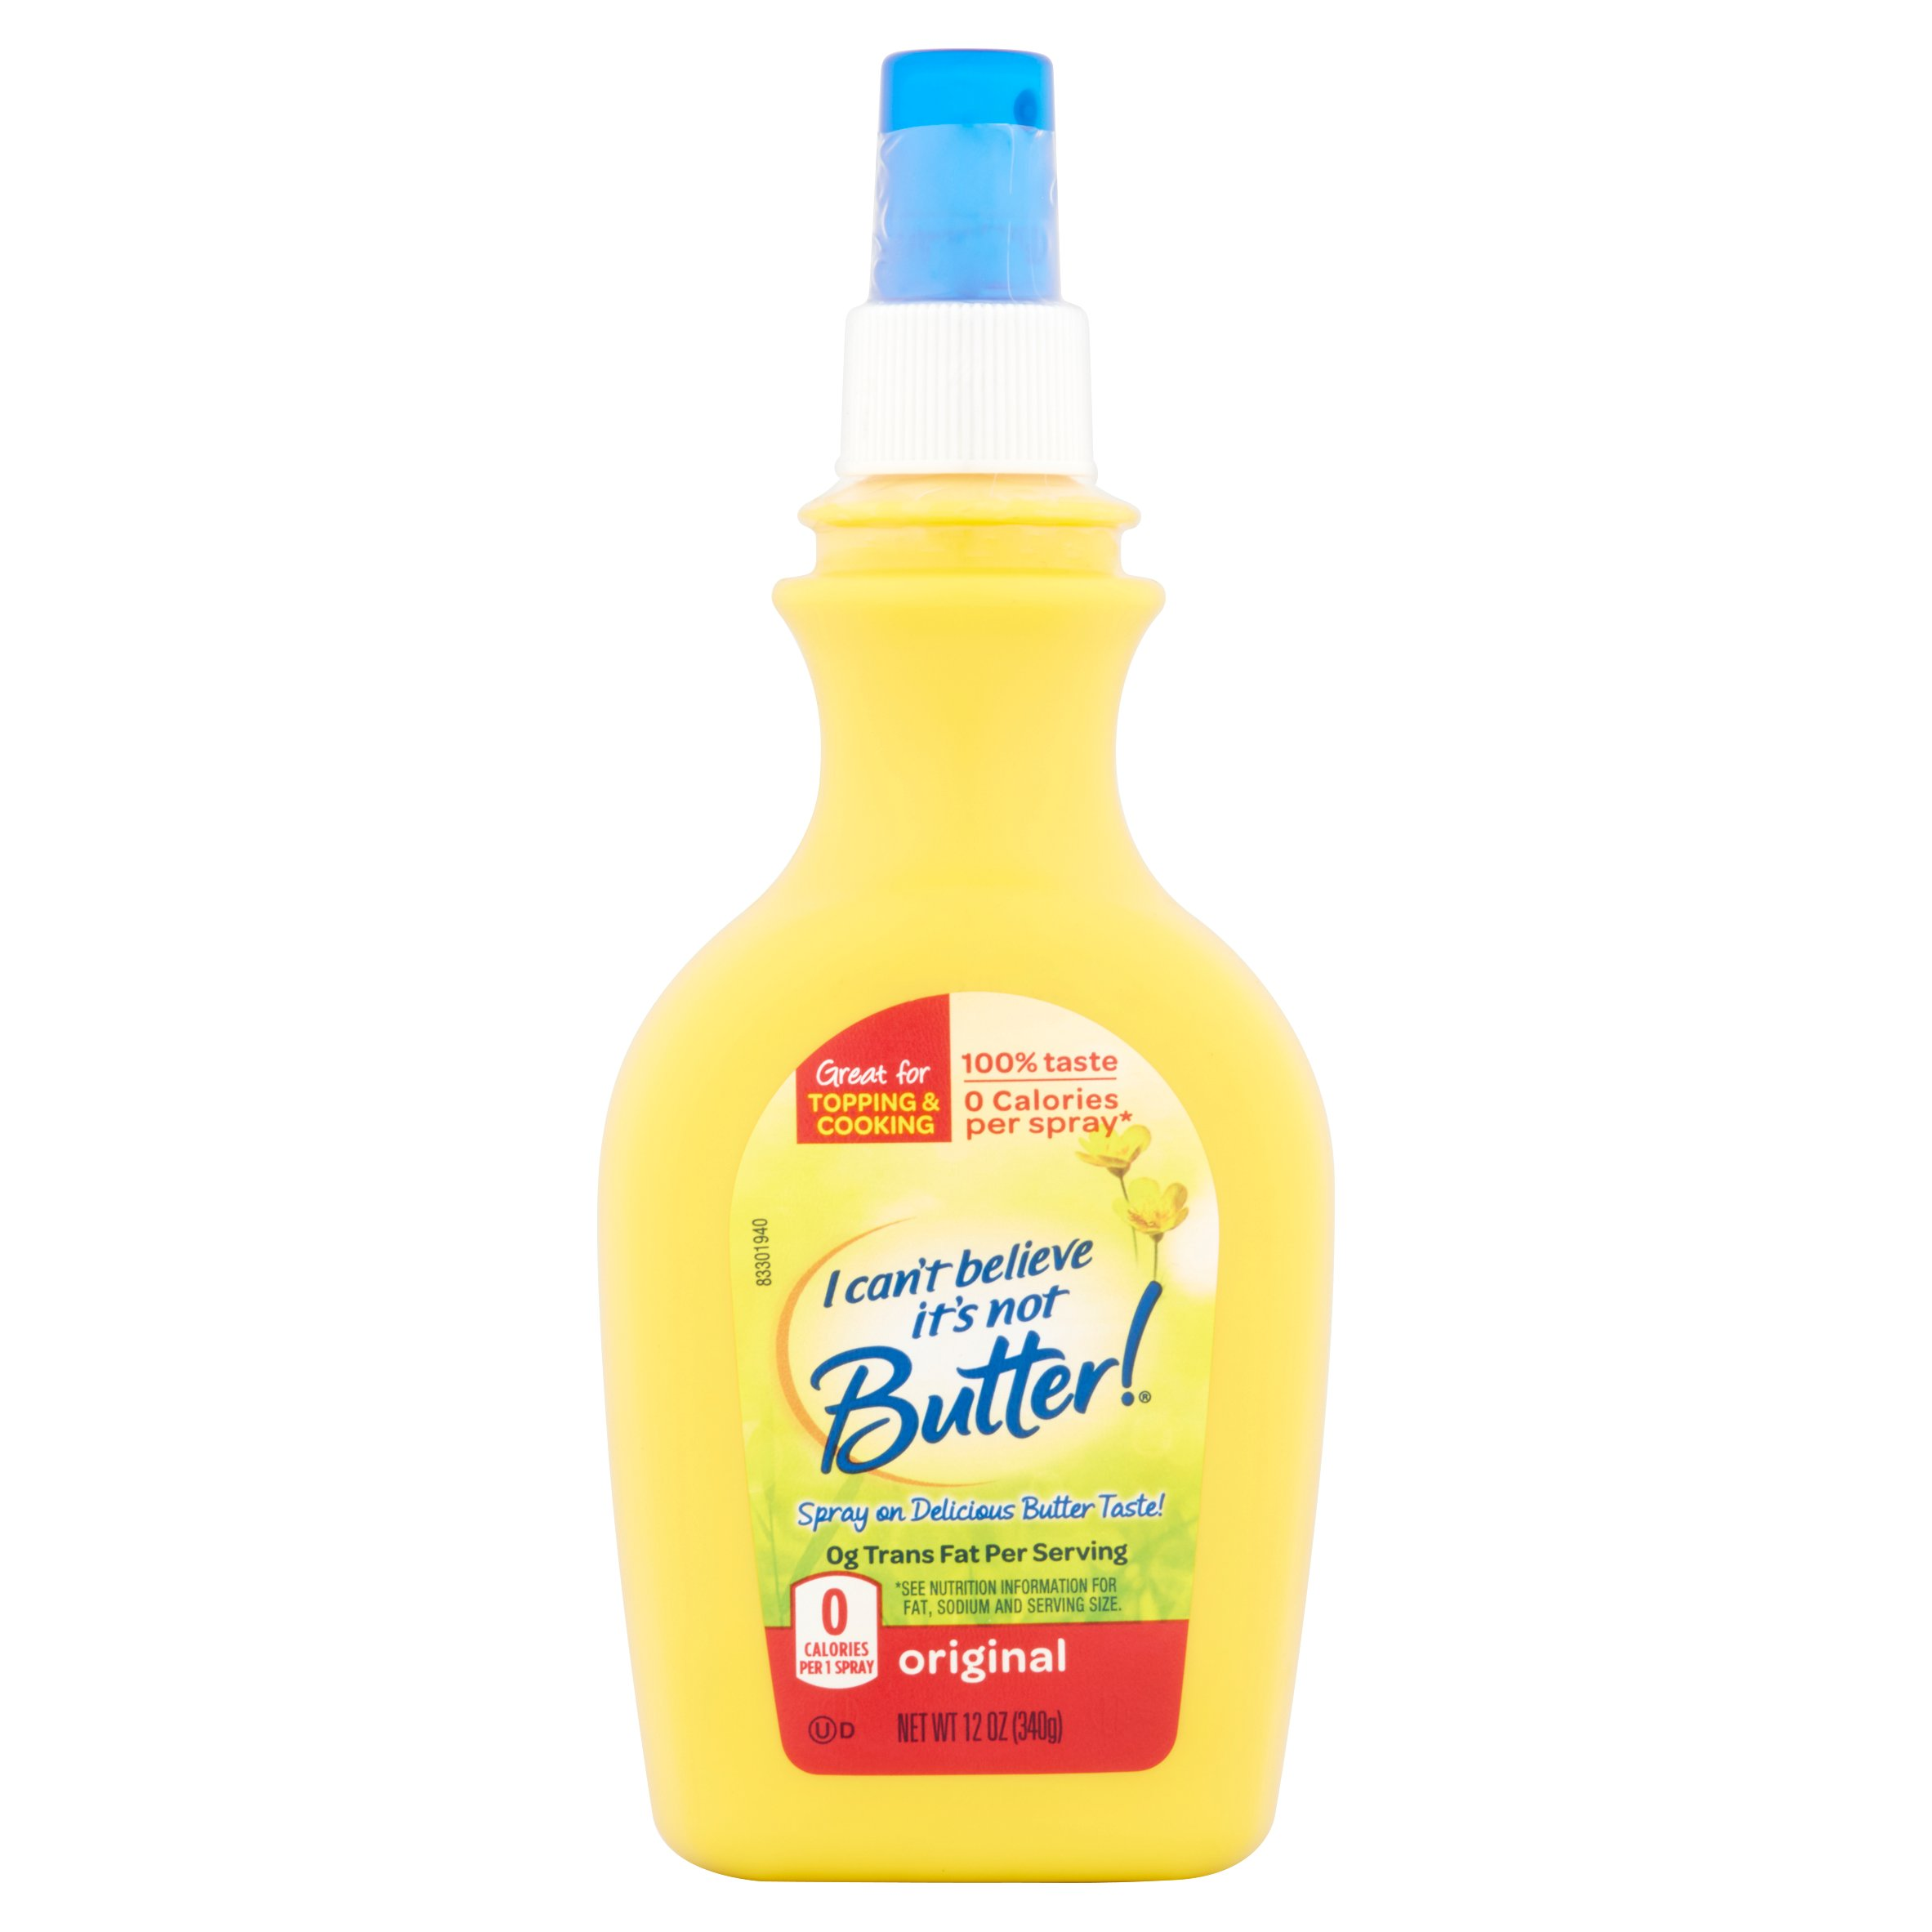 I Can't Believe It's Not Butter Original Cooking Spray, 12 oz